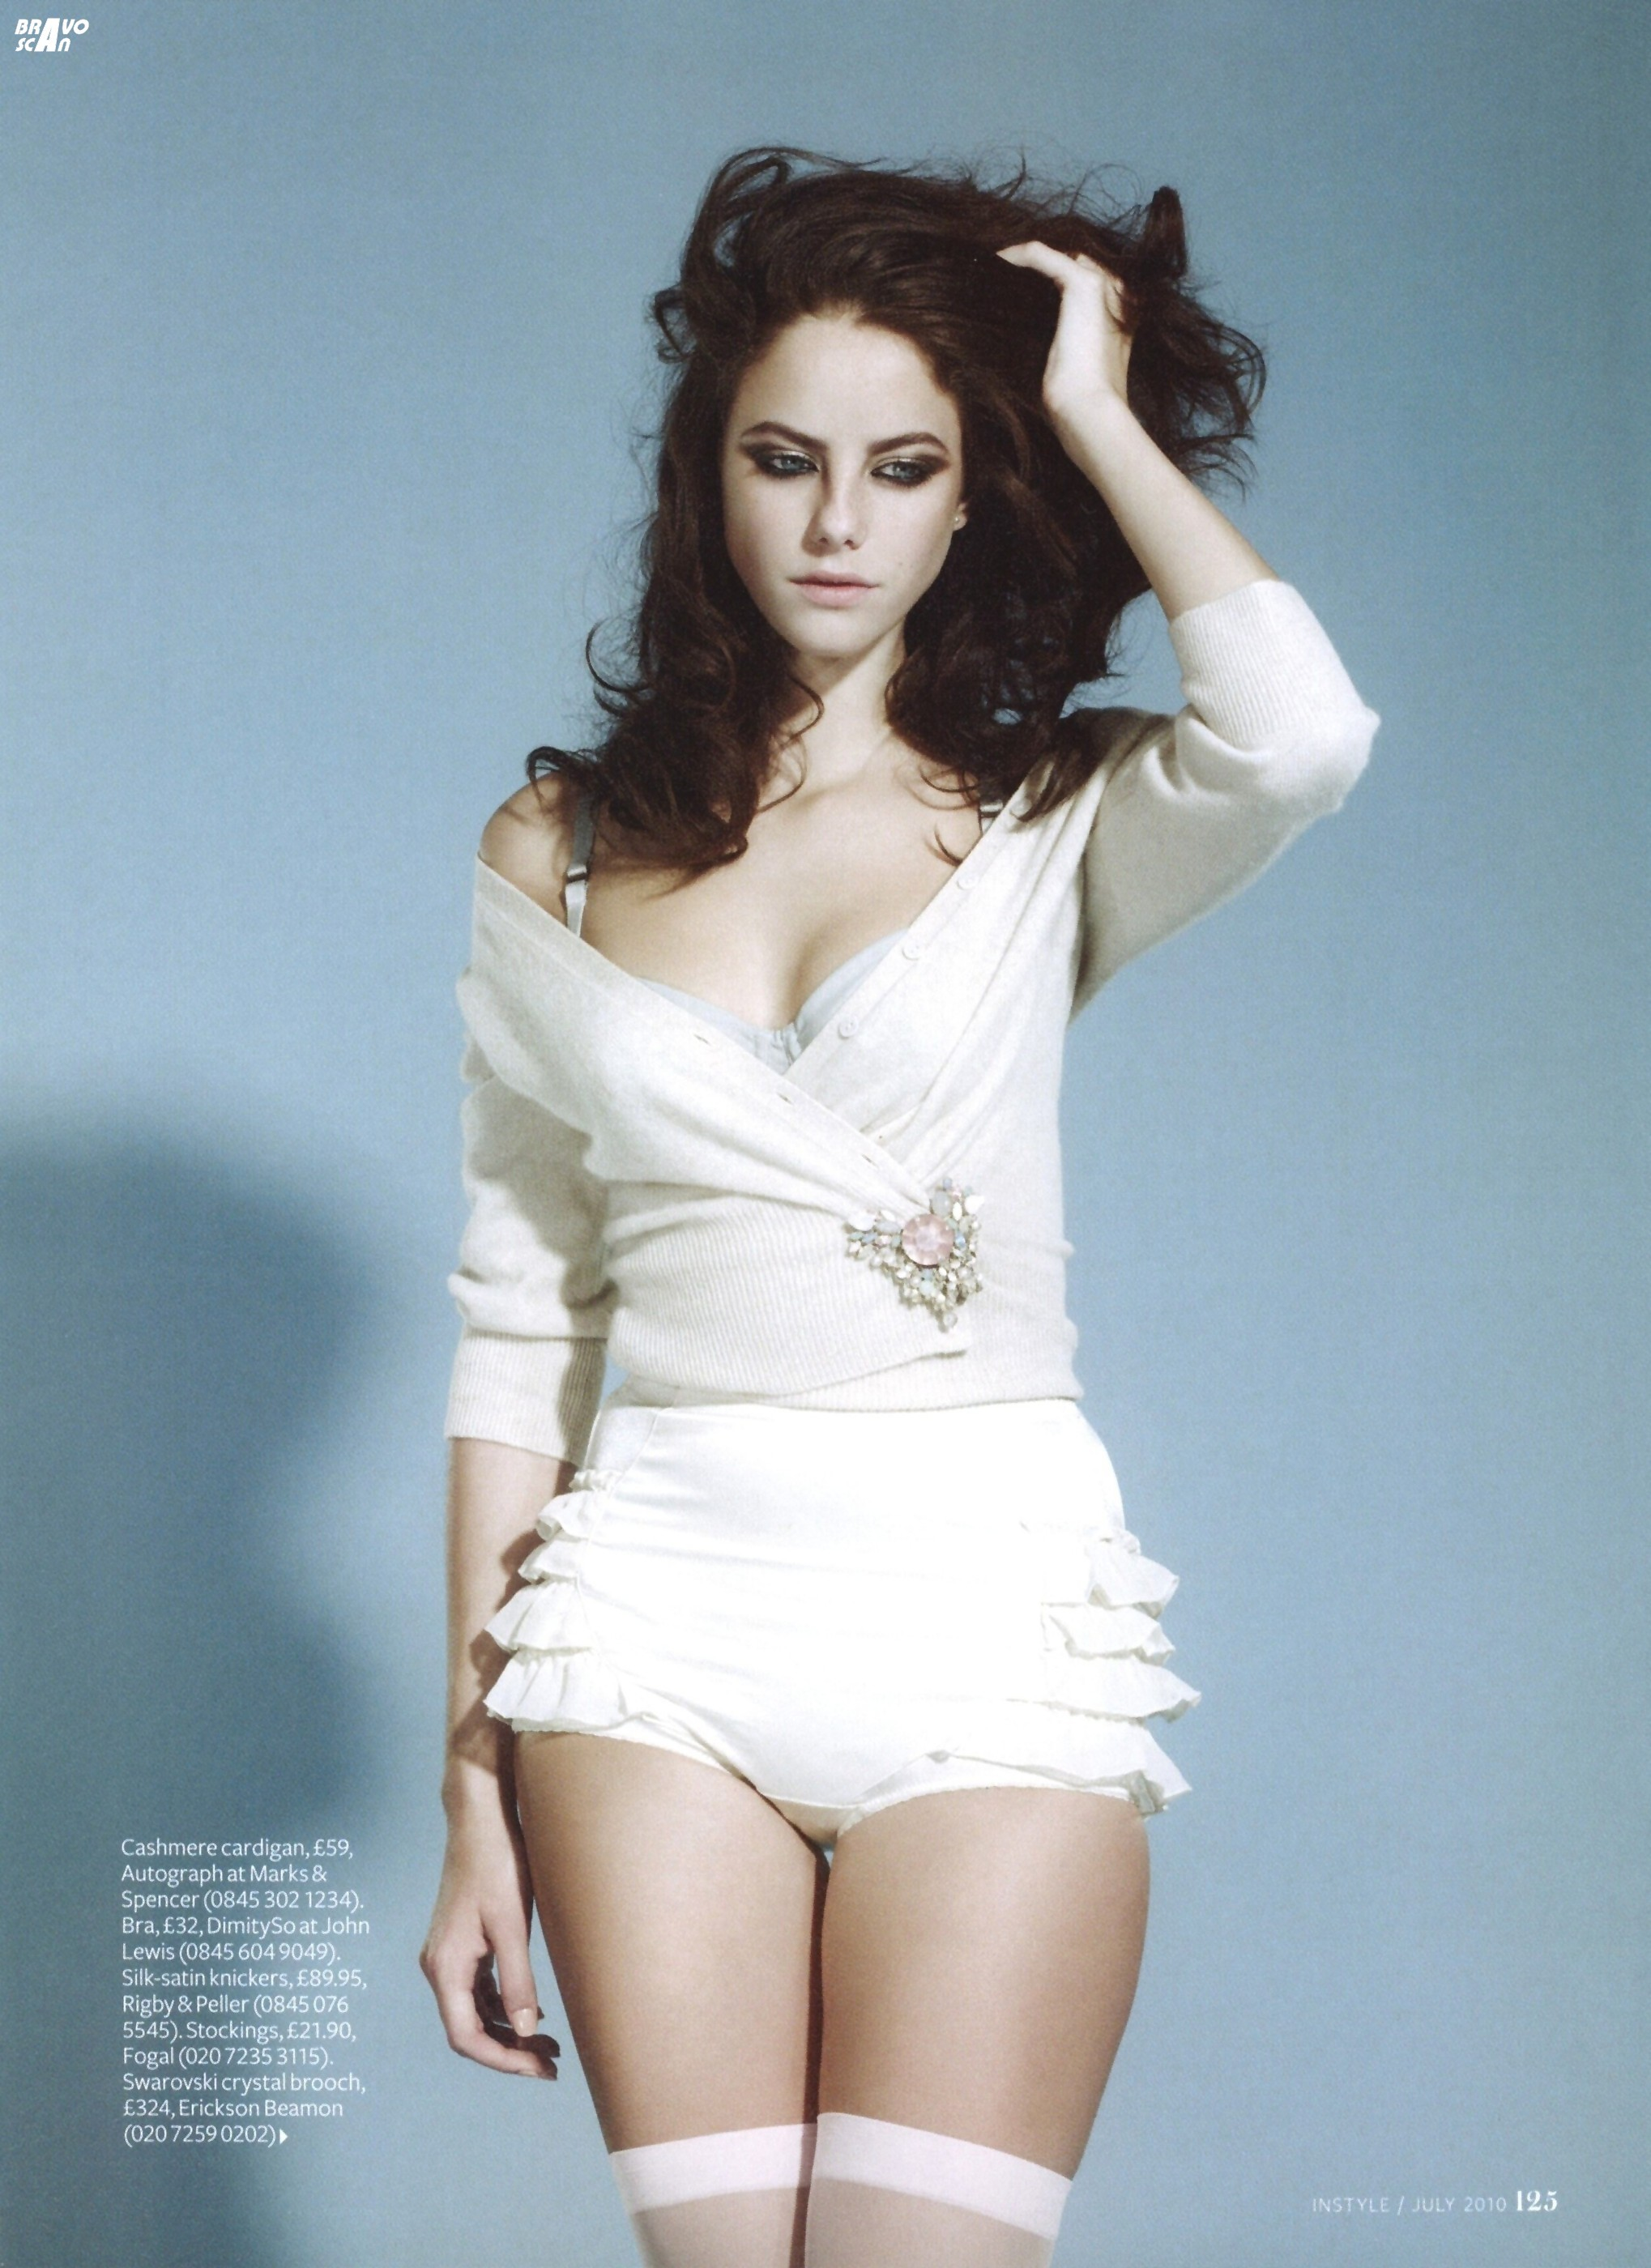 kaya scodelario hot